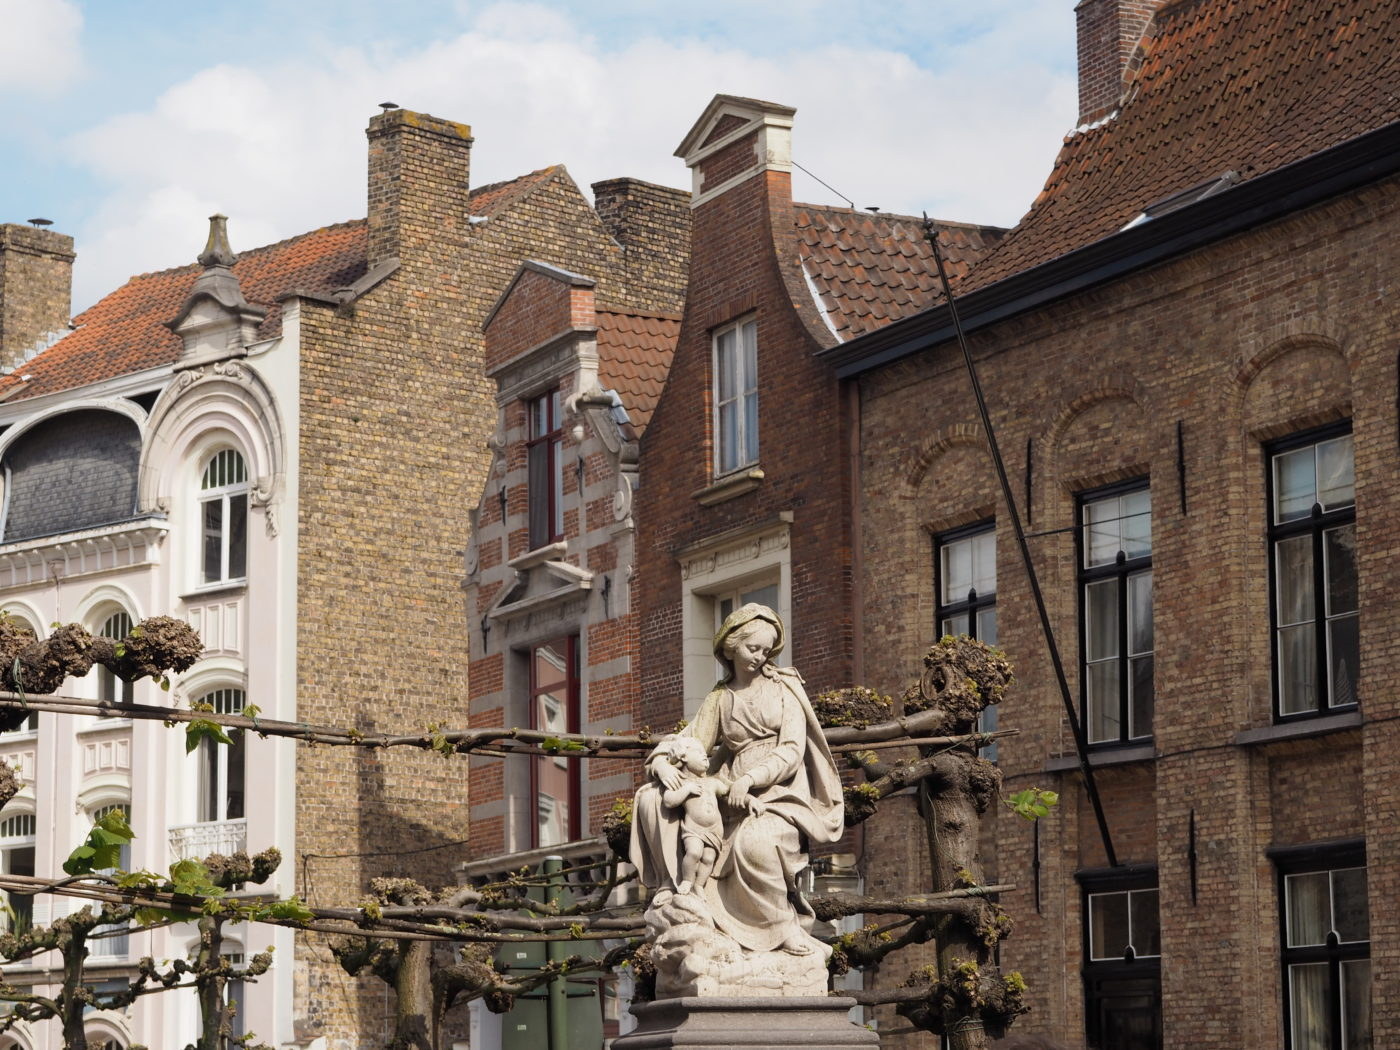 Read my guide of food, museums & sights so you too can have a fairytale in Bruges | almostginger.com